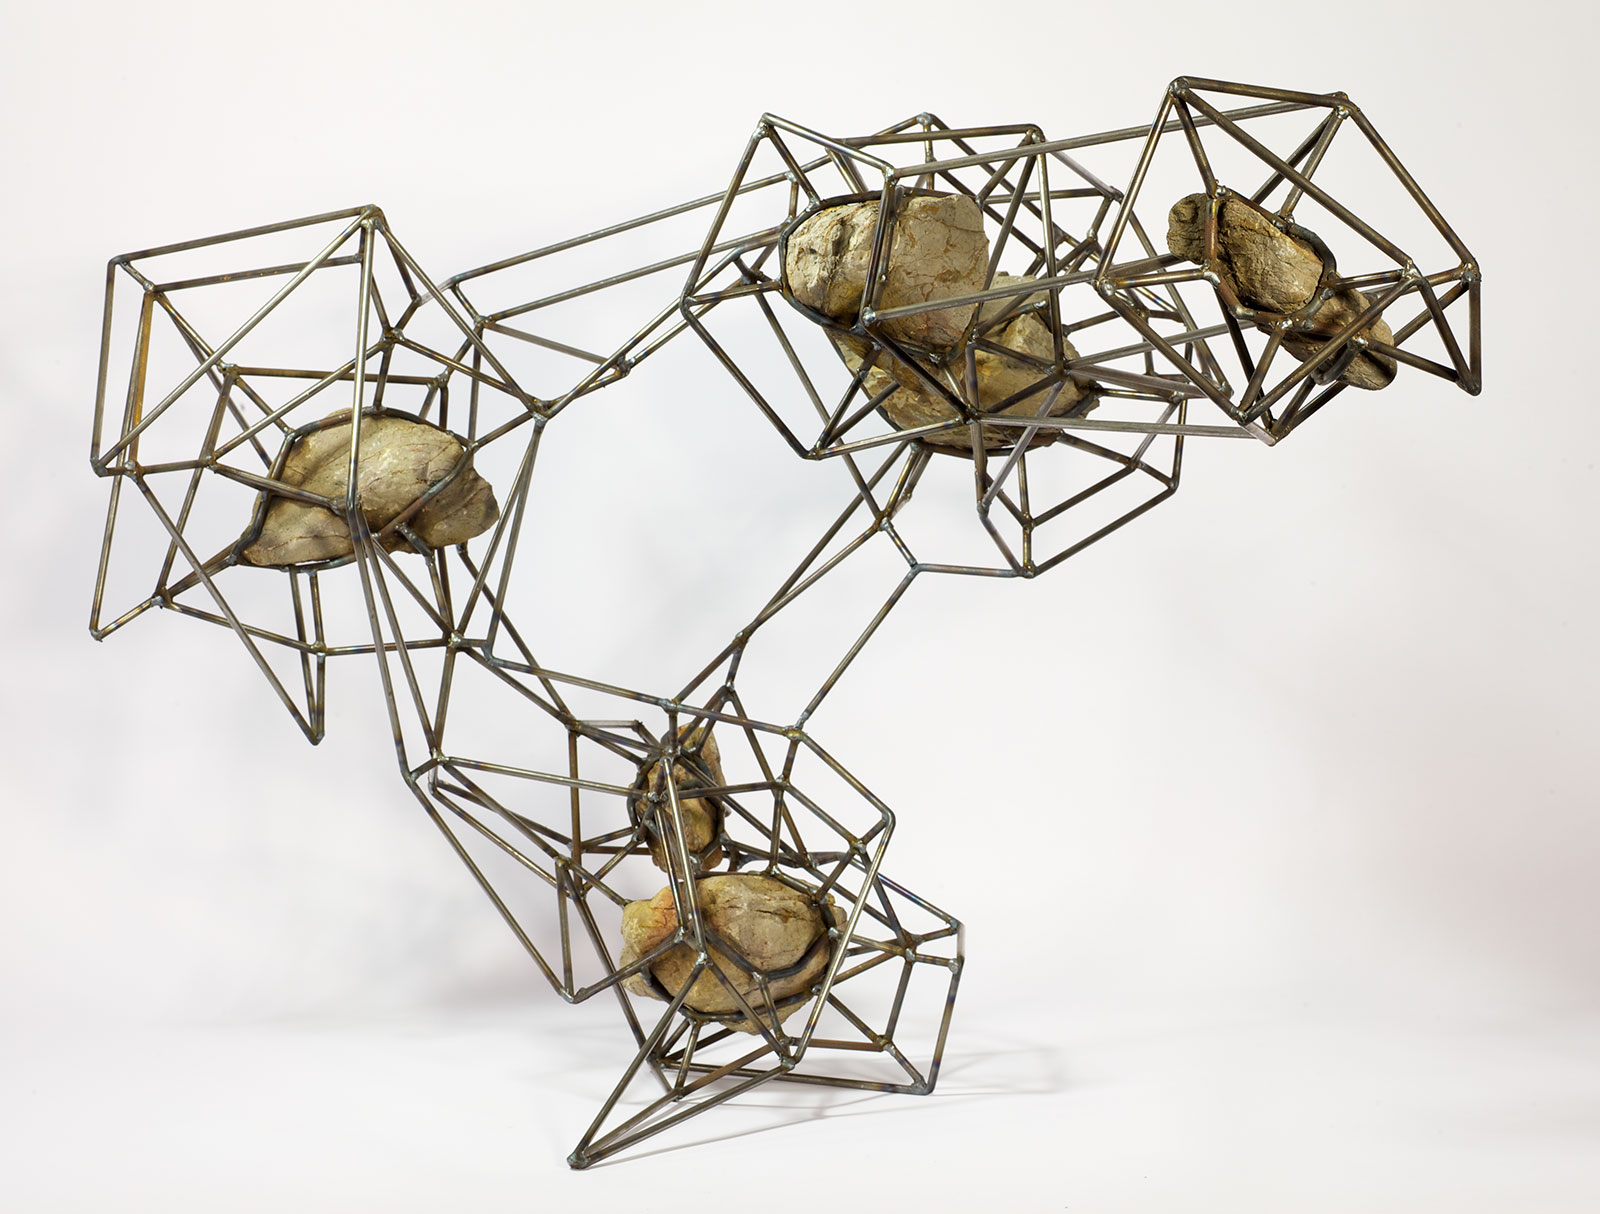 rocks suspended in steel lattice